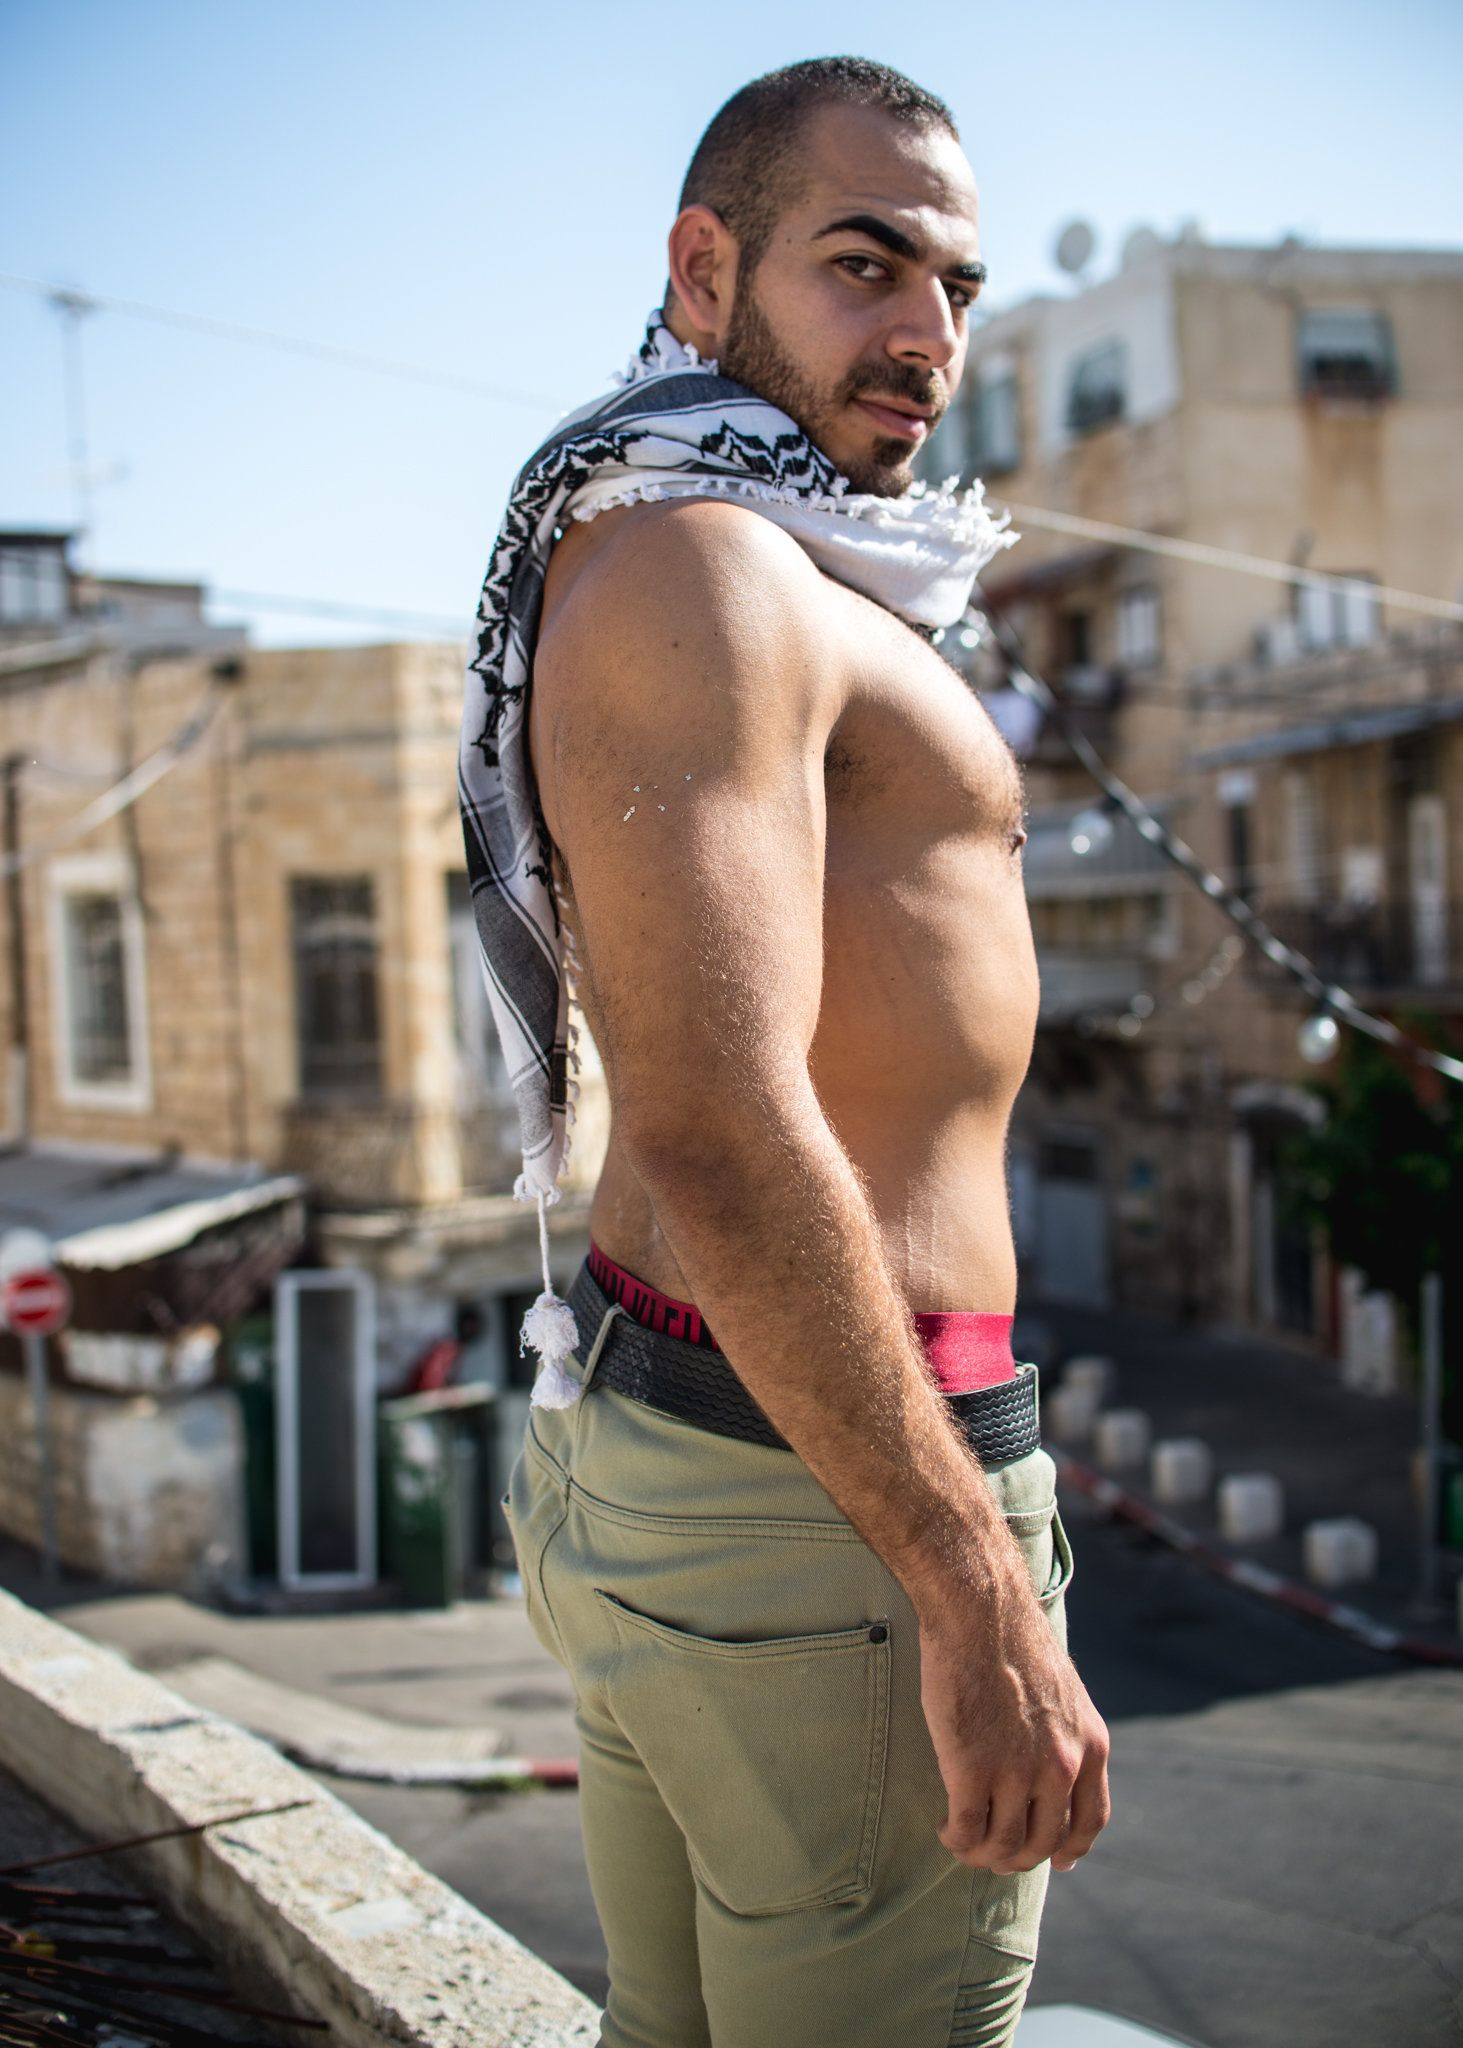 Arab gay male